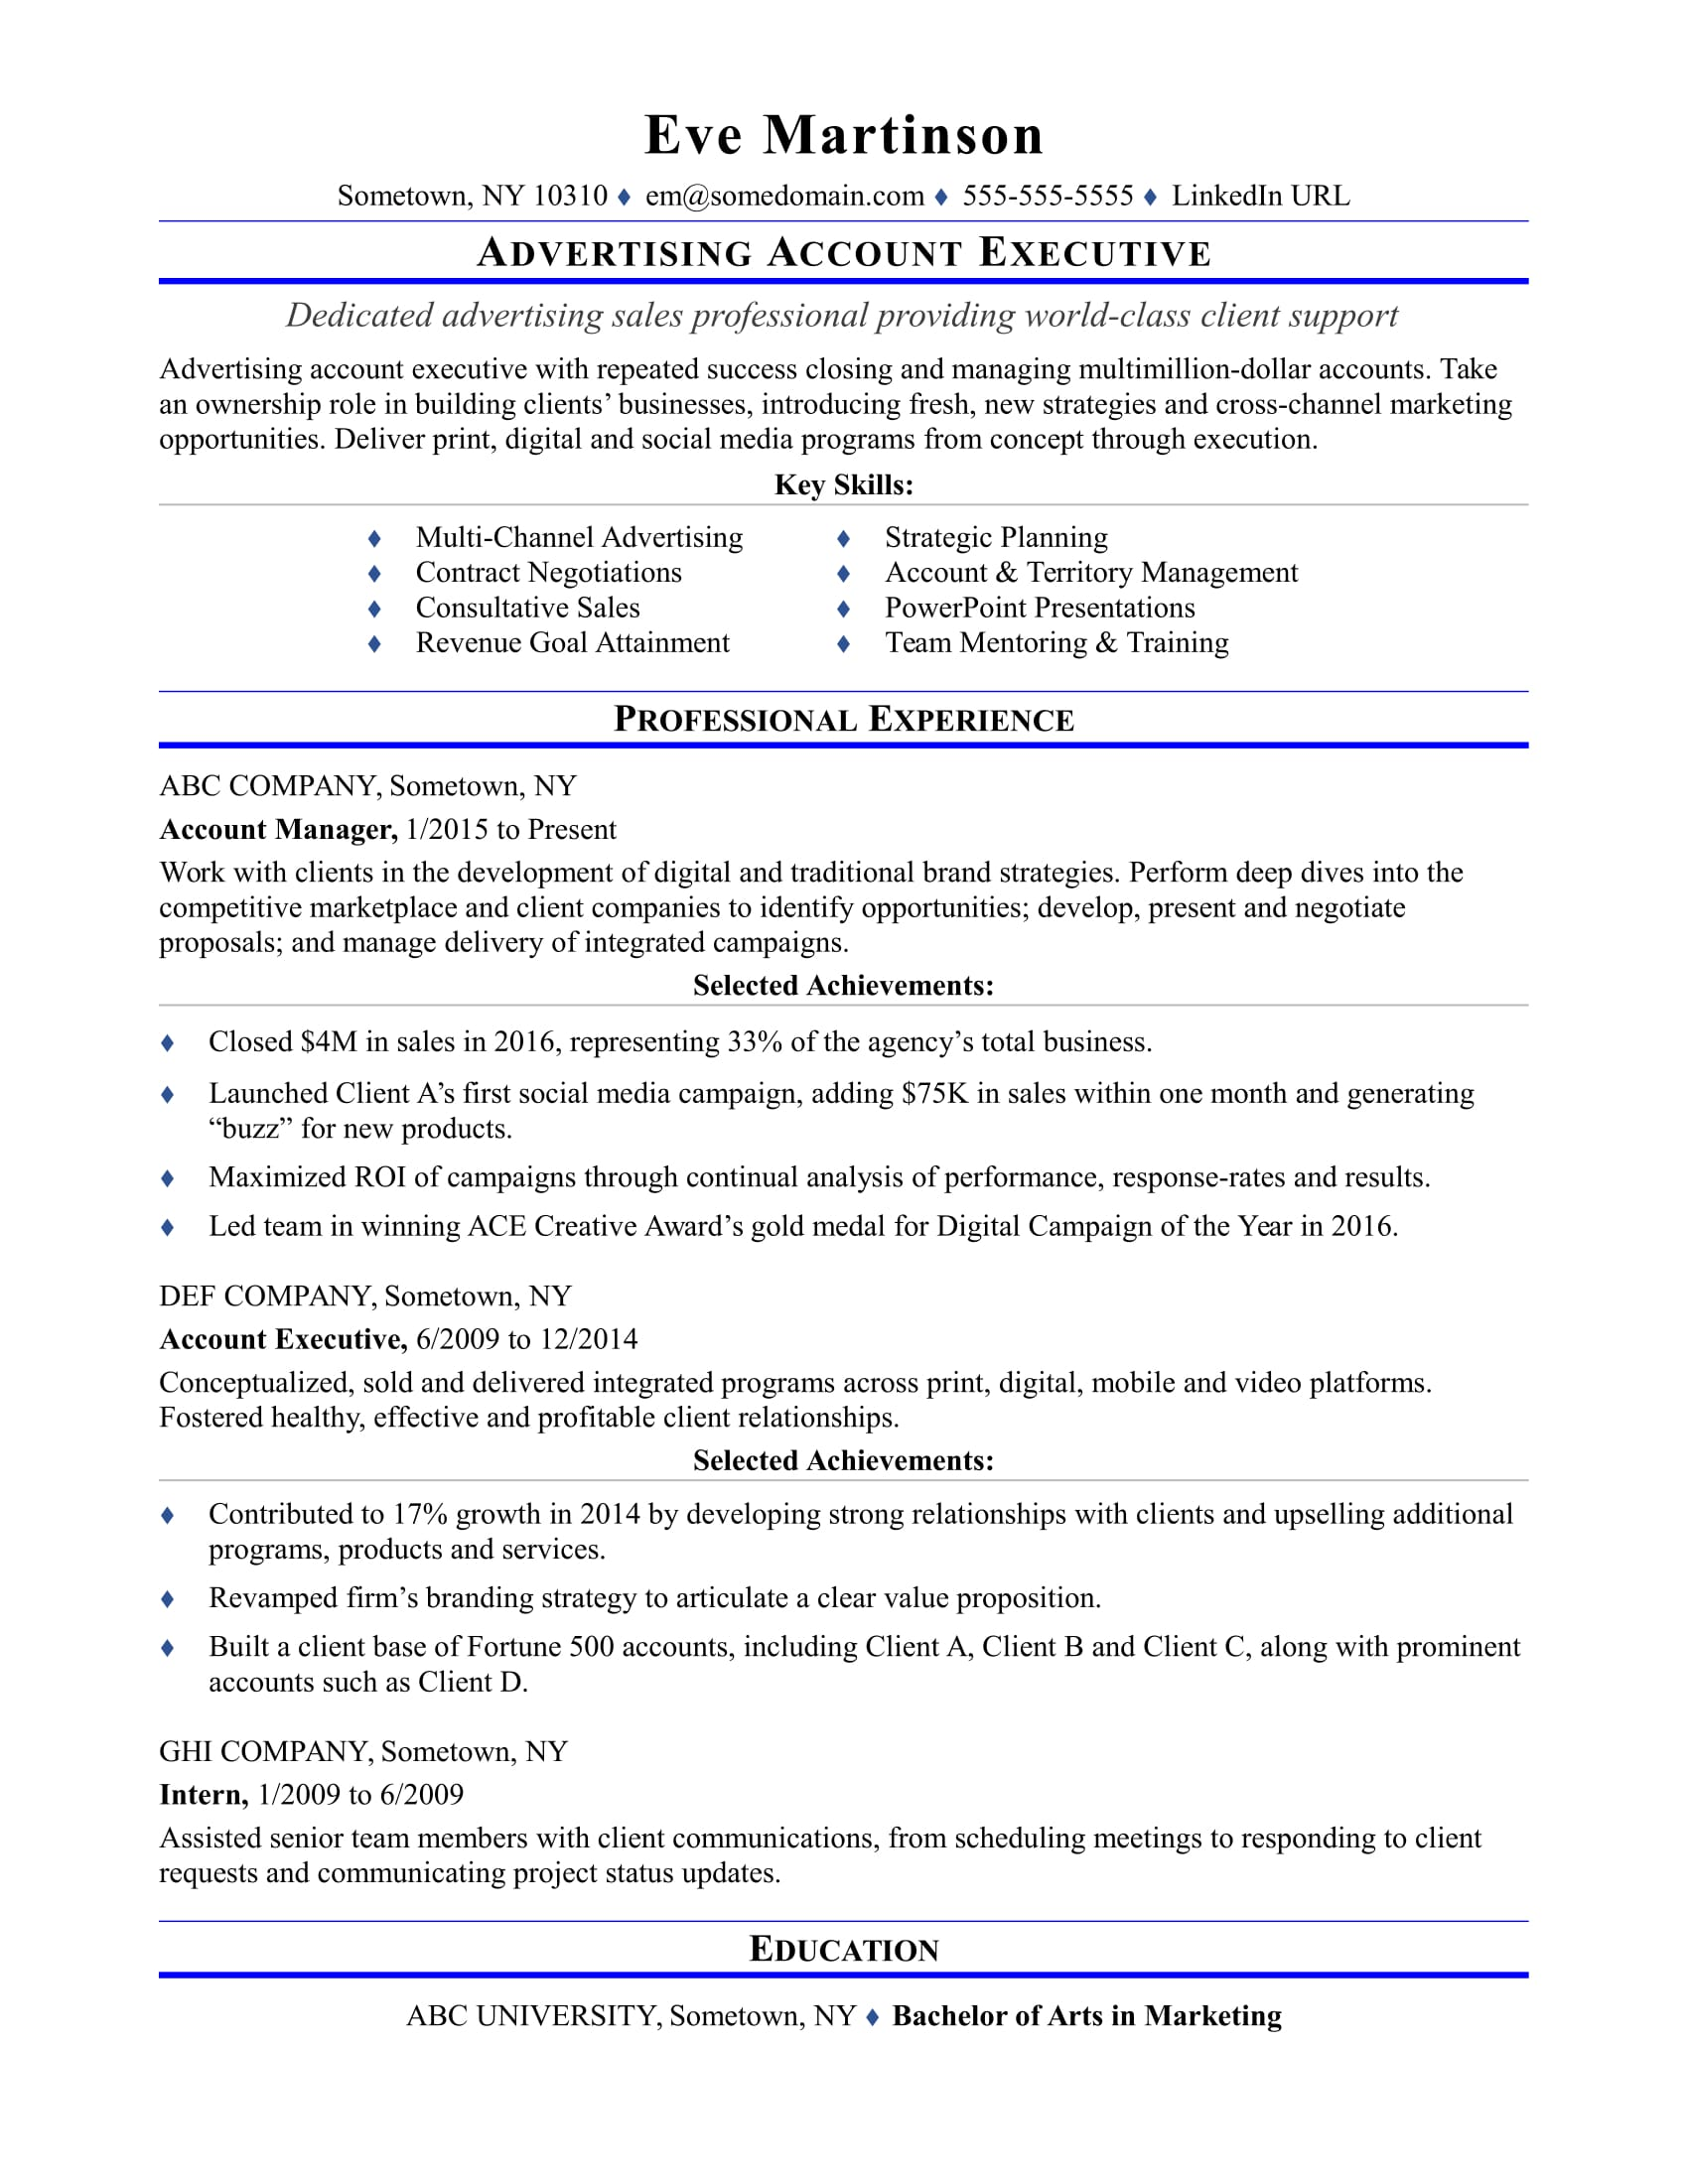 sample resume for an advertising account executive monster format ats free scan some Resume Executive Resume Format